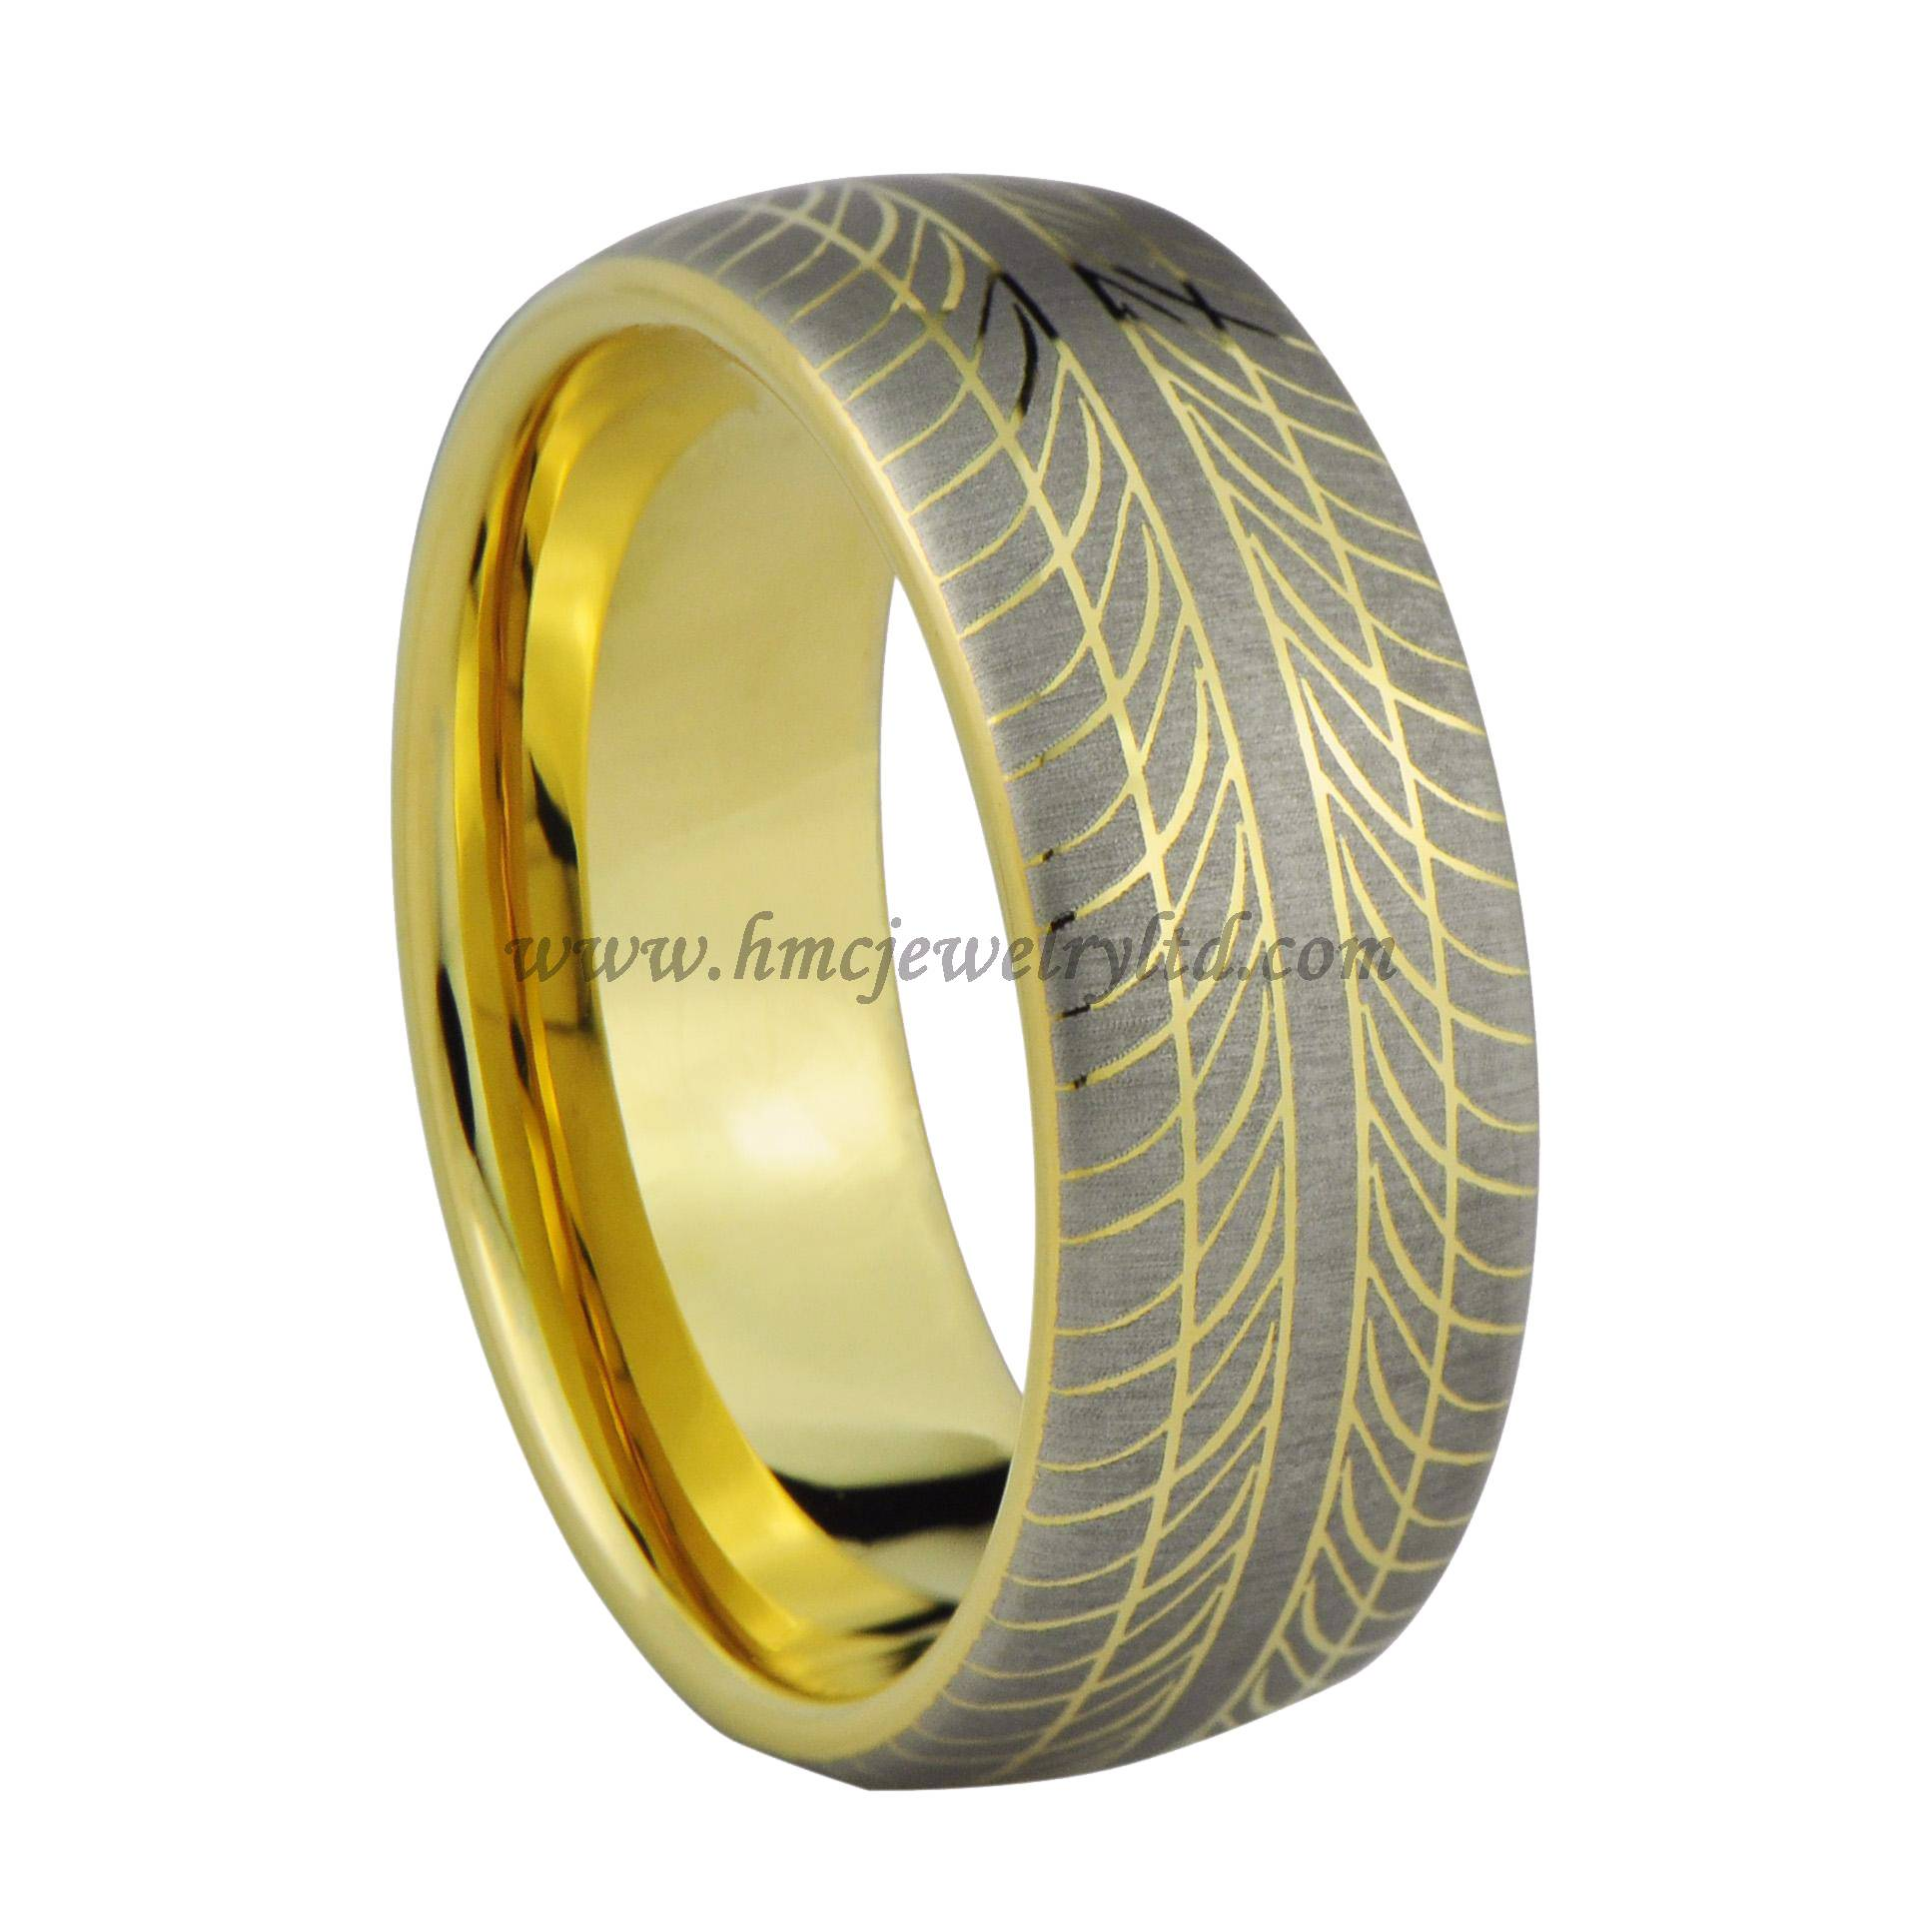 Tyre Tread Pattern Tungsten Carbide Ring, Gold Plated Tungsten Carbide Mens Ring